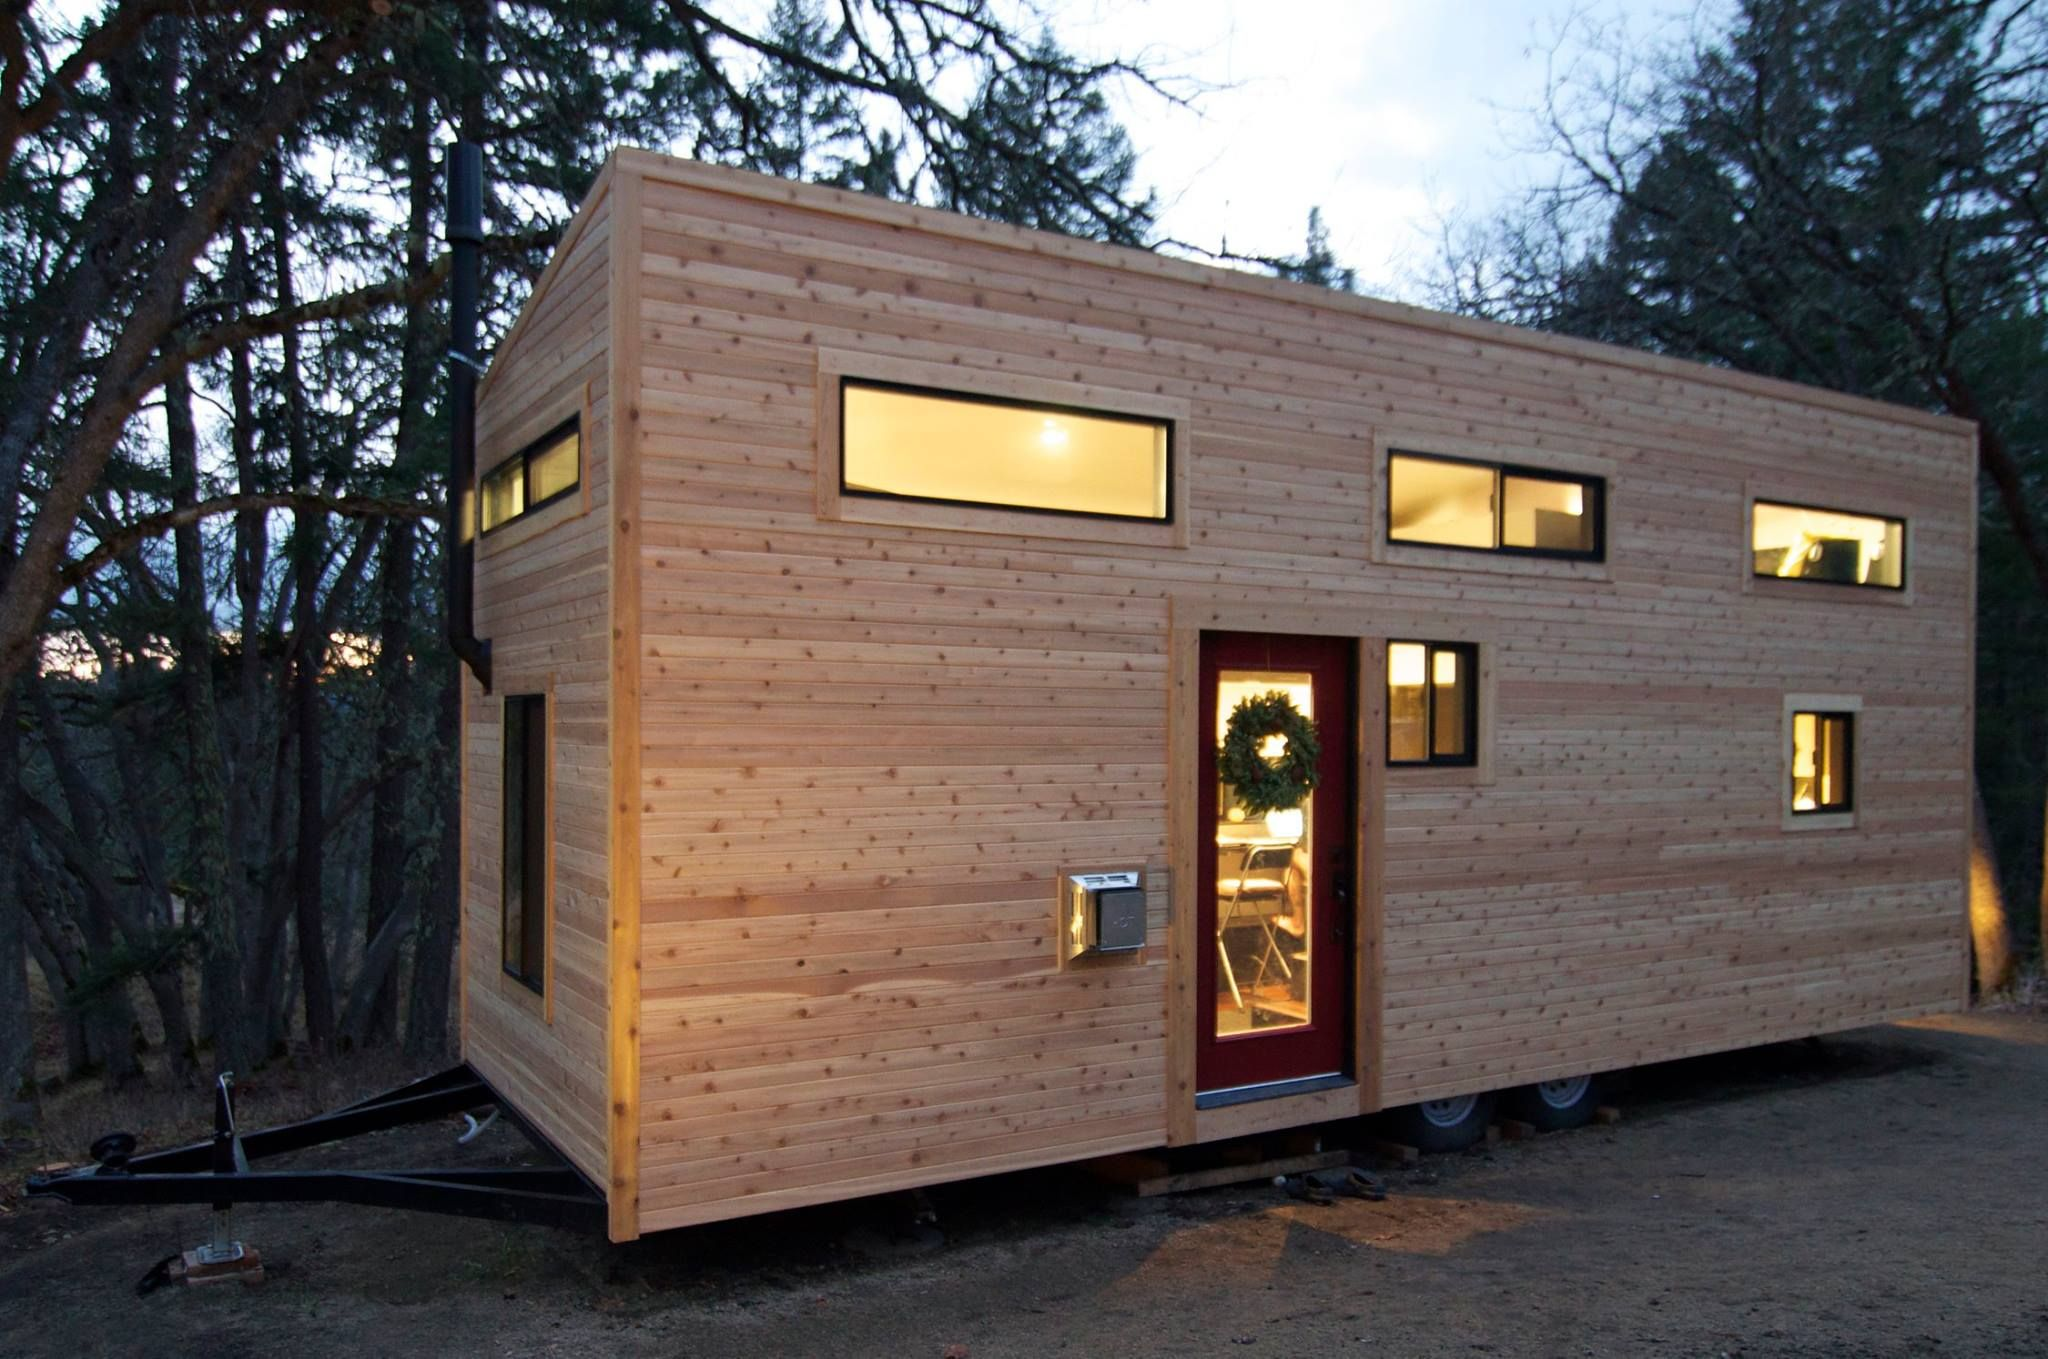 Tiny Home Designs: Strawbalers Move Into Their Newly Constructed Tiny House